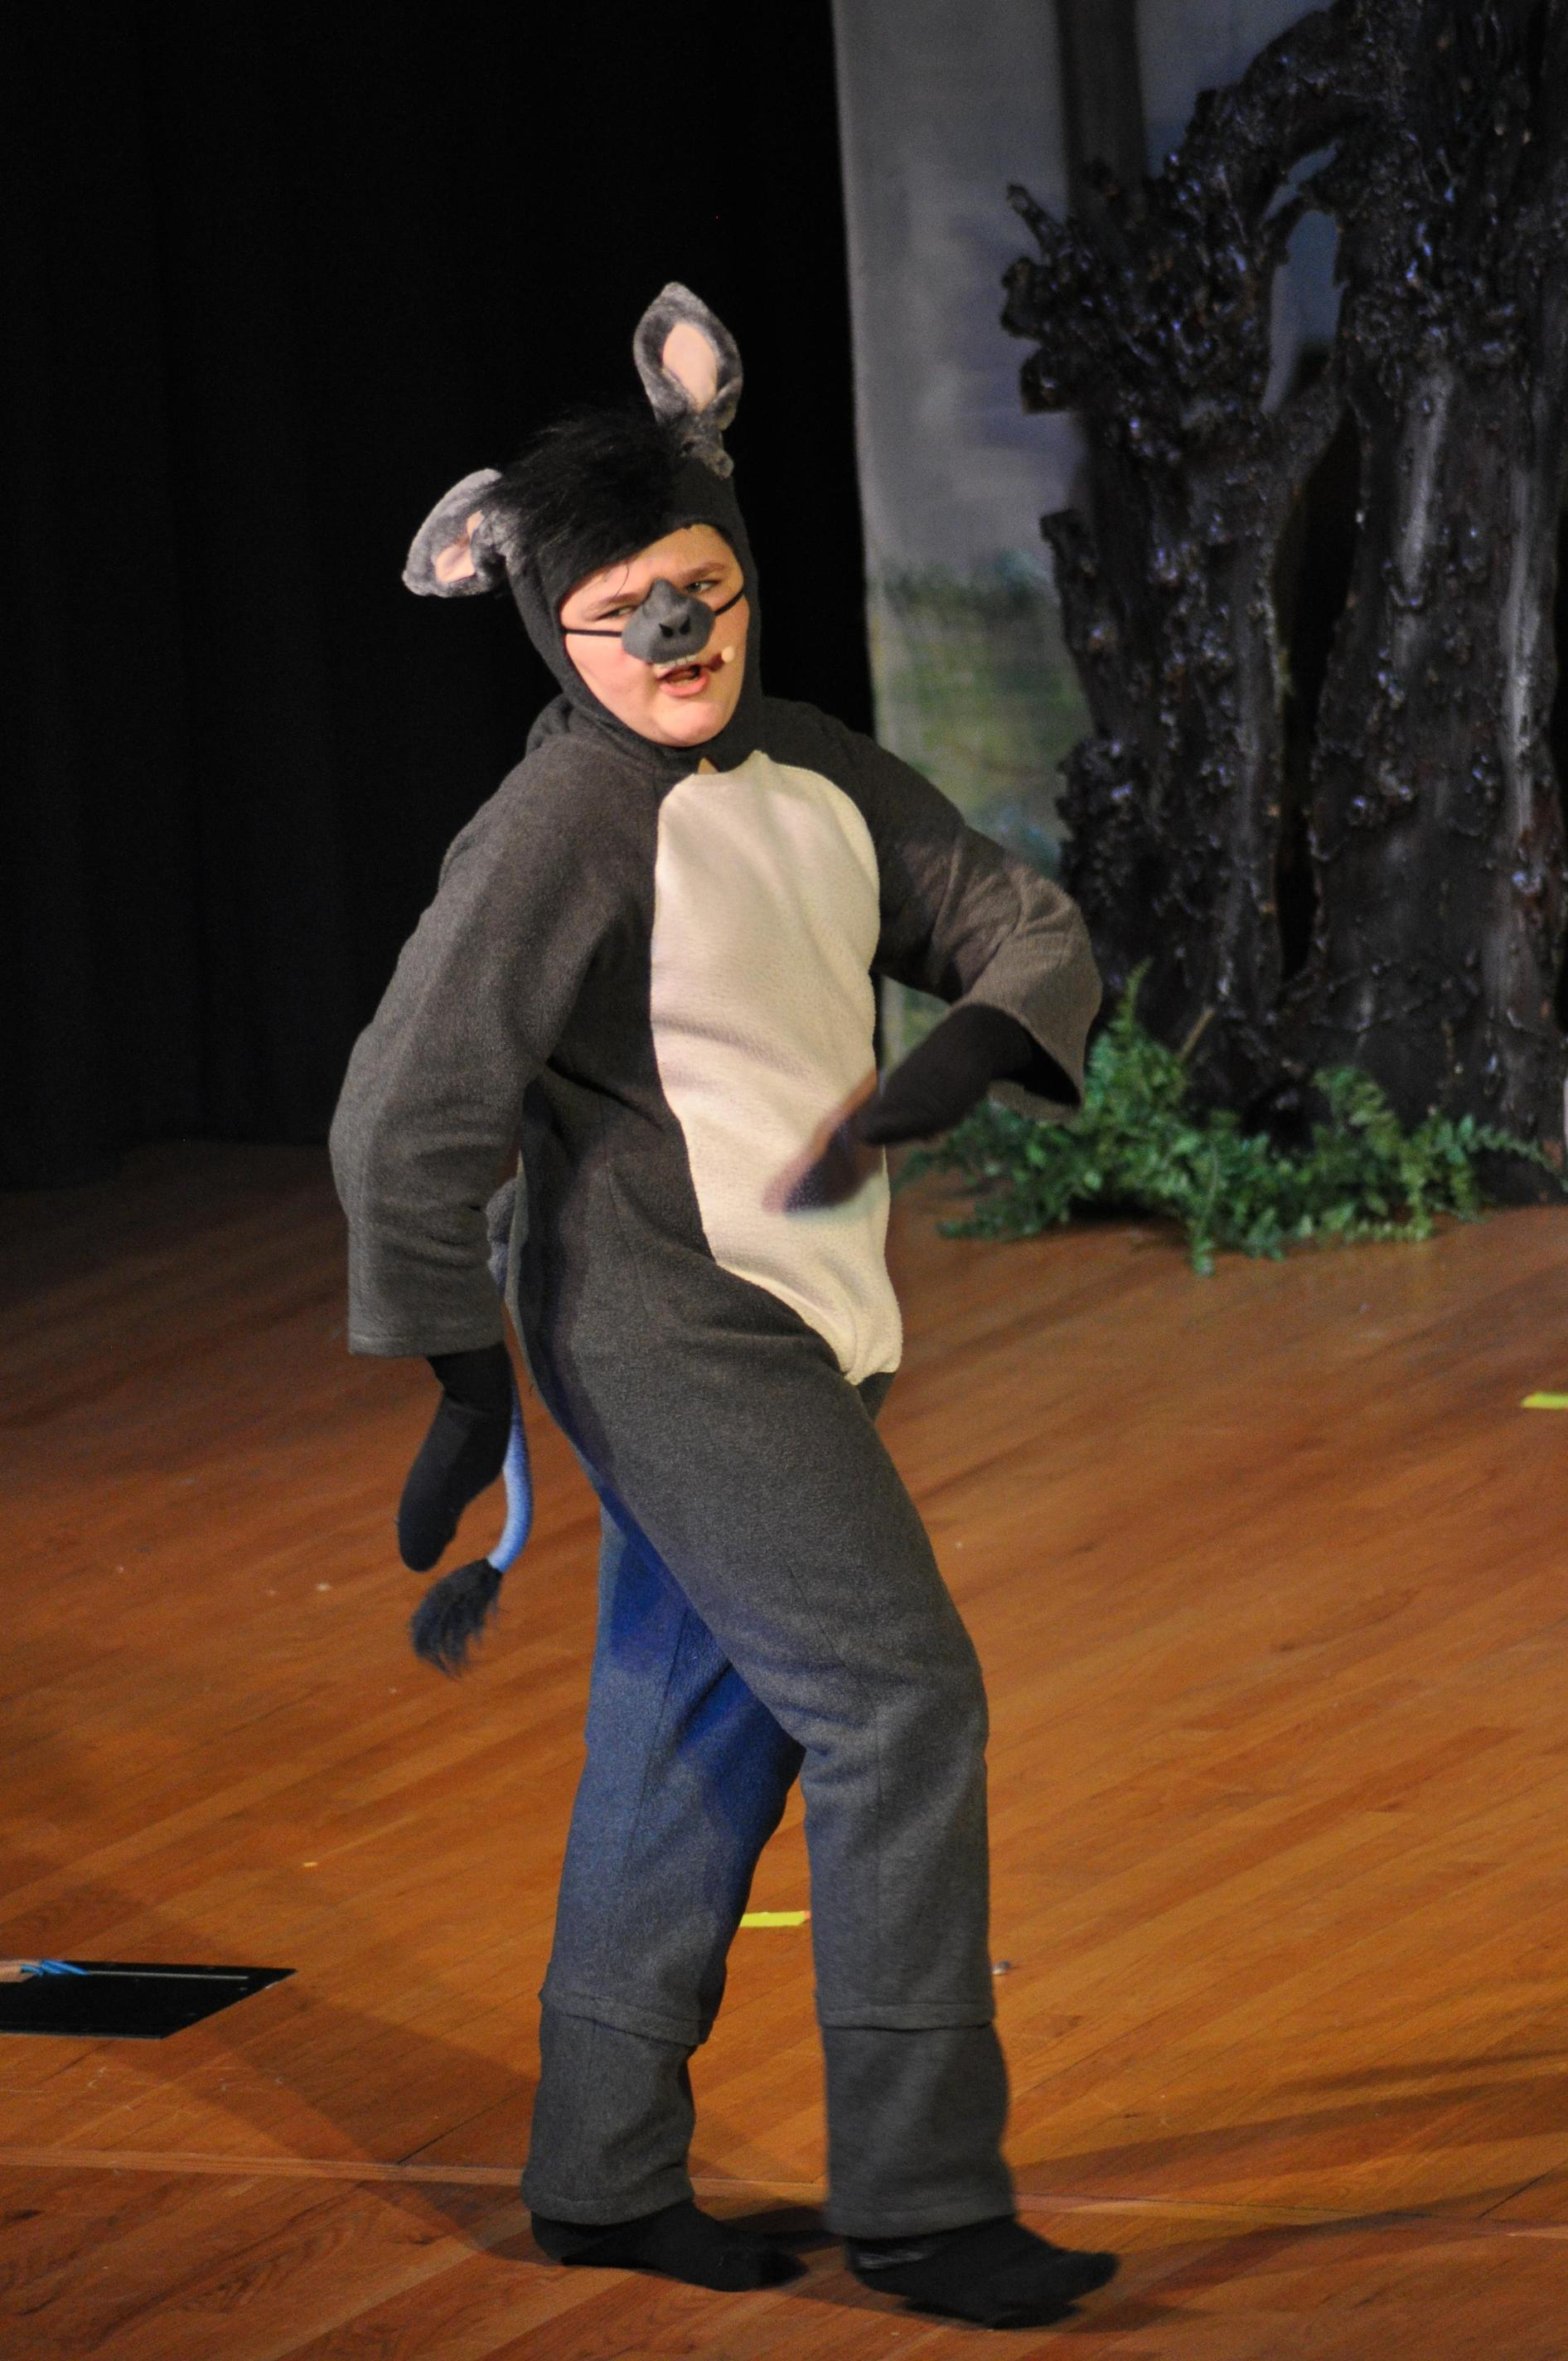 Donkey in Children's Theater's Production of 'Shrek The Musical Jr.' in January 2018